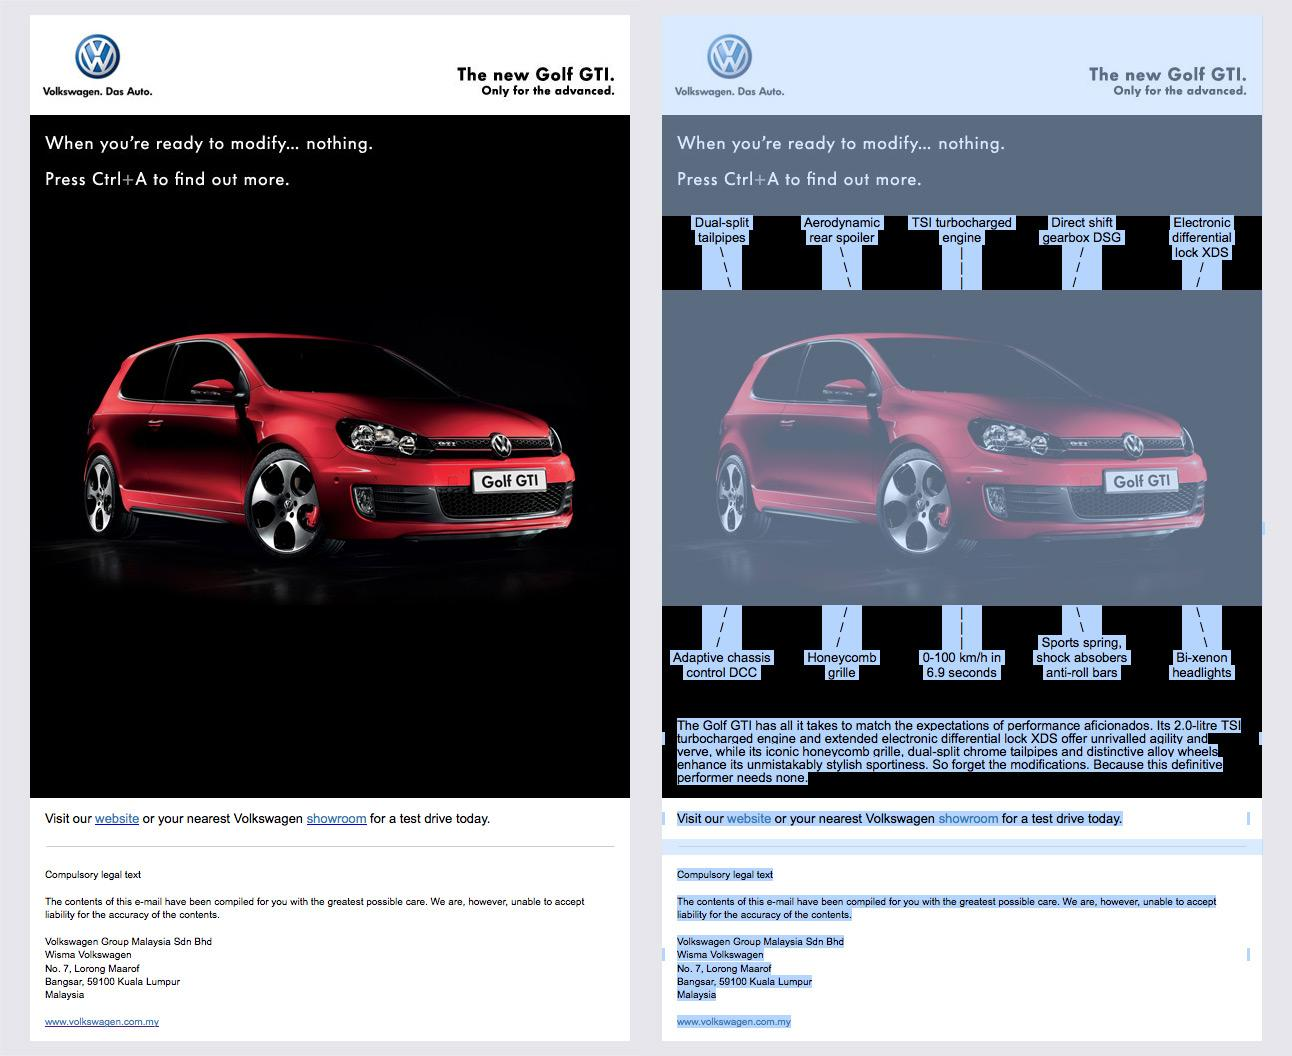 Volkswagen Digital Ad -  The new Golf GTI. Only for the advanced.